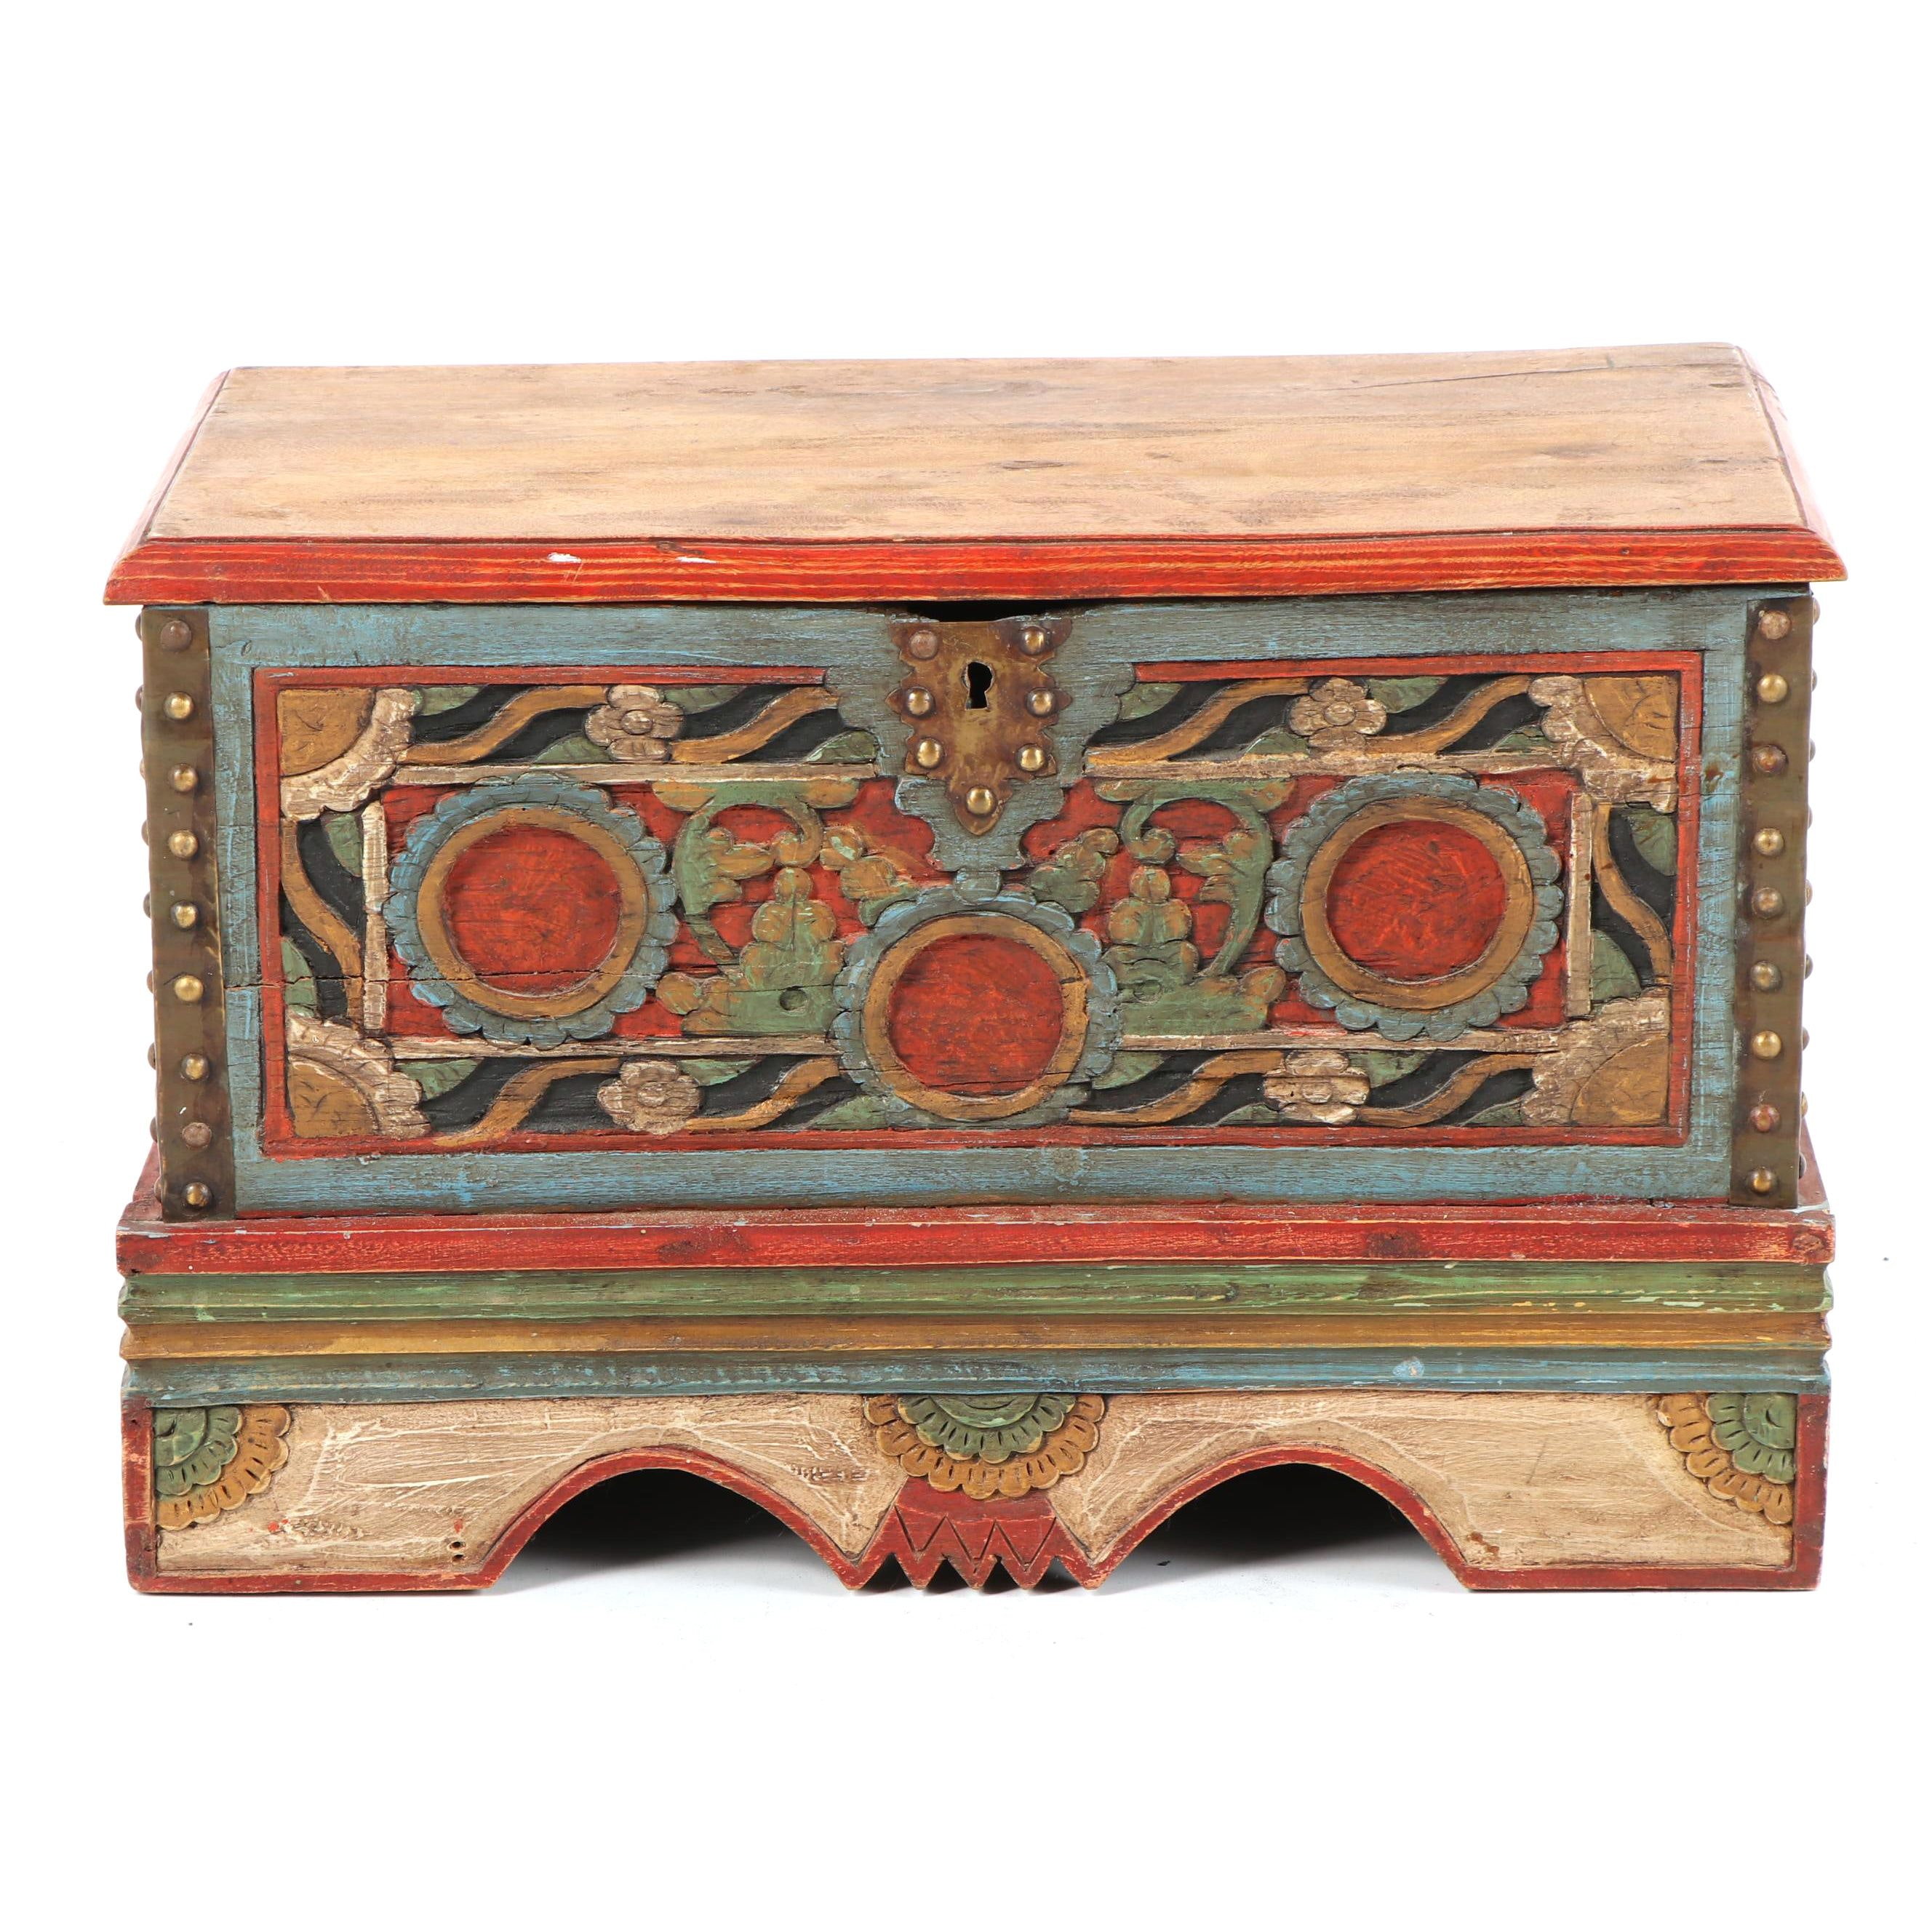 Vintage Indonesian Style Carved and Painted Wood Chest